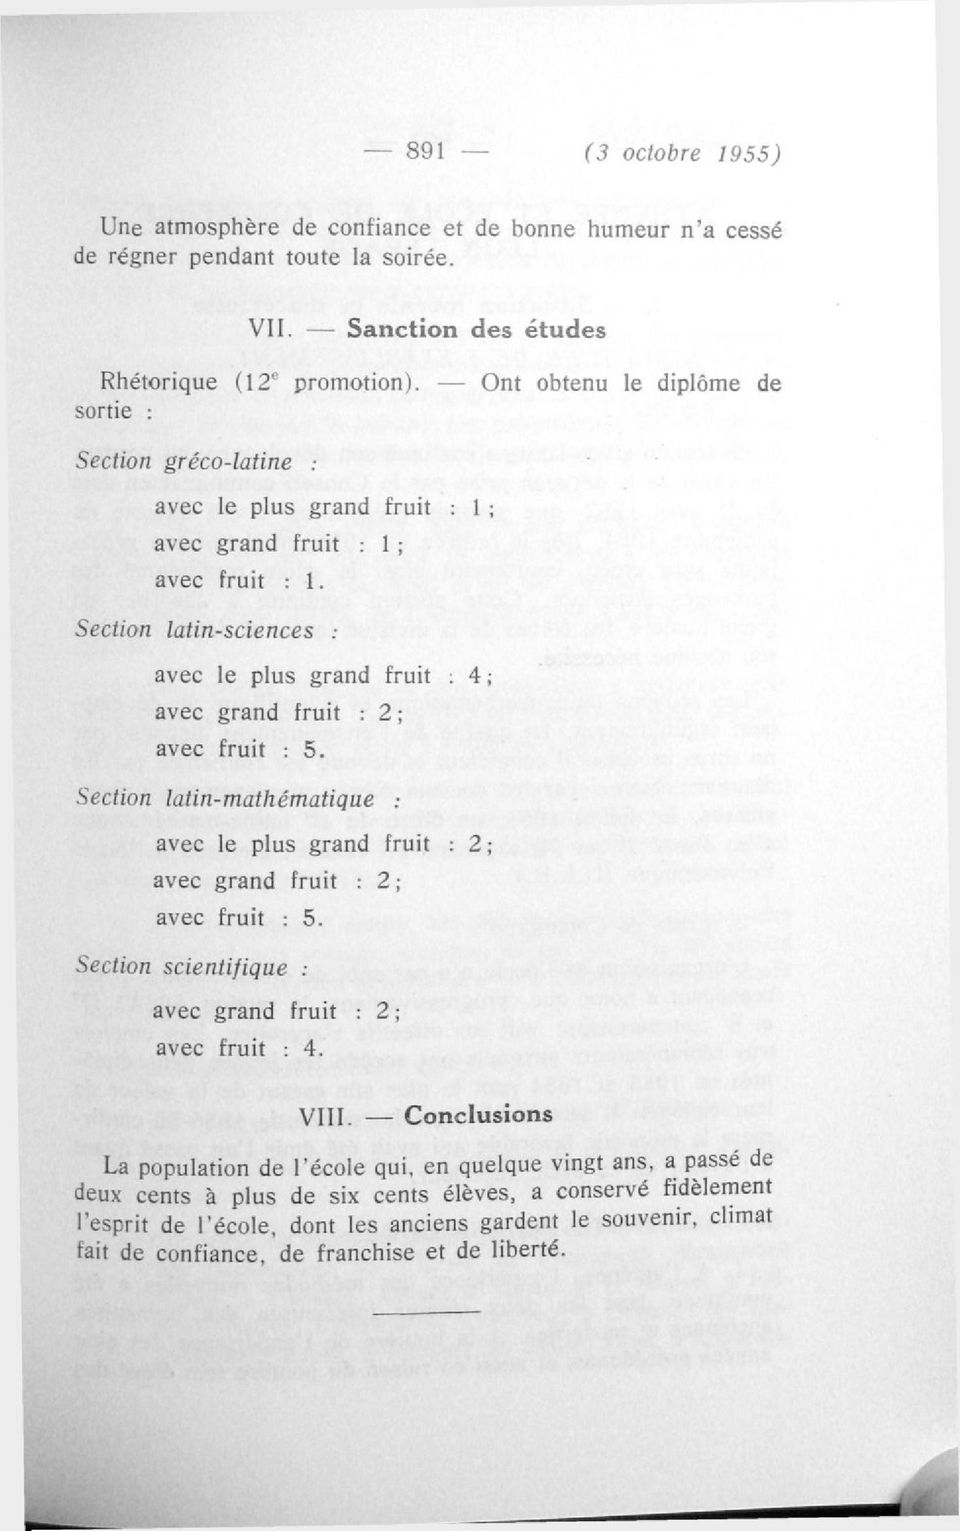 Section latin-sciences : avec le plus grand fruit : 4 ; avec grand fruit : 2 ; avec fruit : 5. Section latin-mathématique : avec le plus grand fruit : 2 ; avec grand fruit : 2 ; avec fruit : 5.